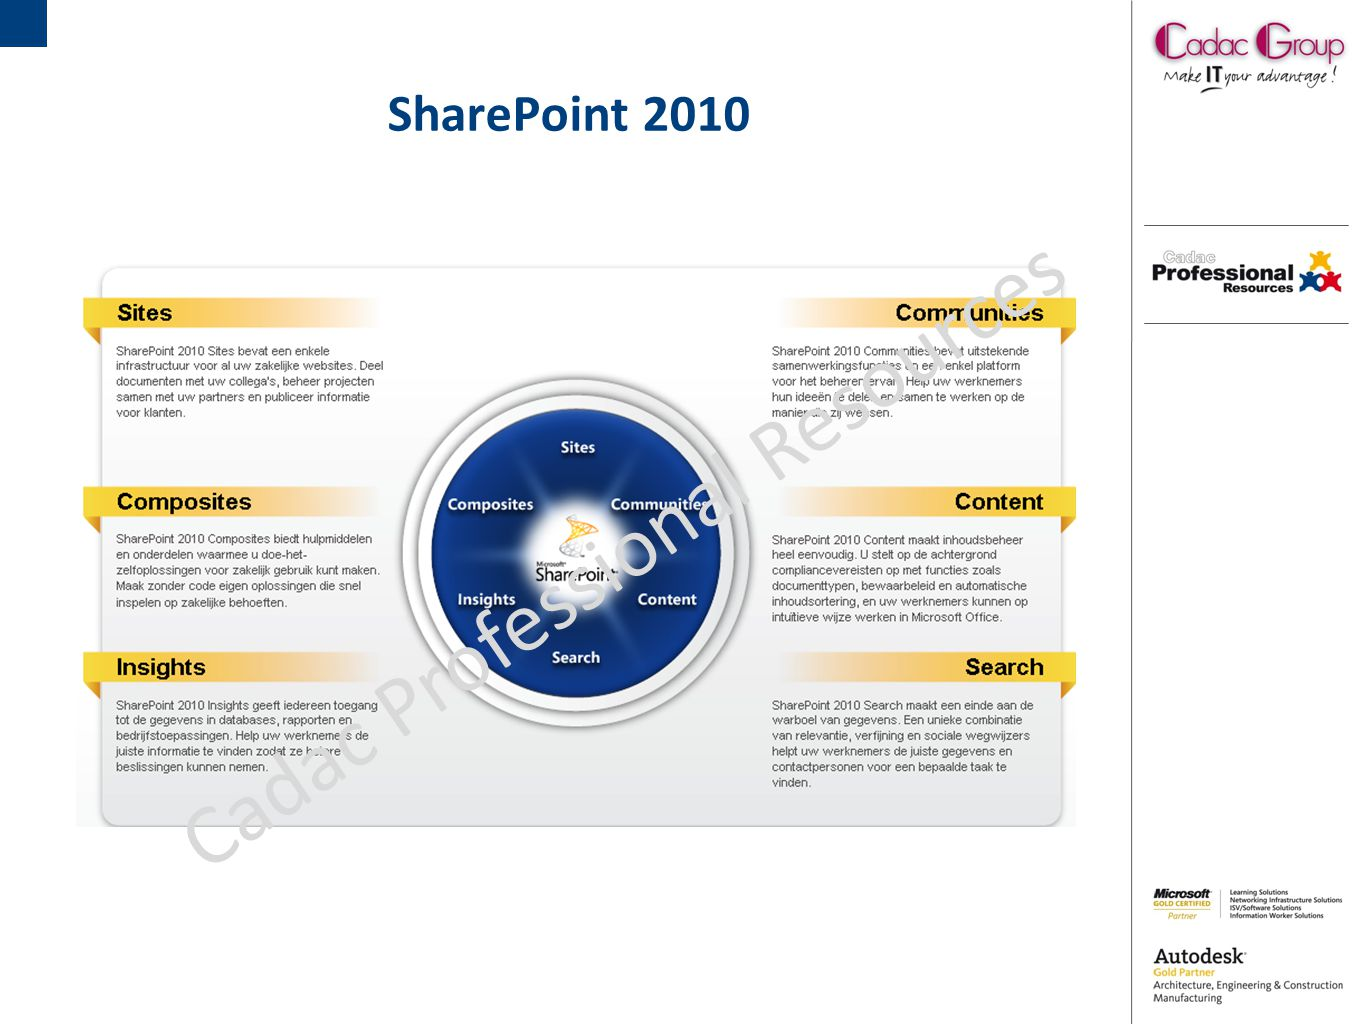 SharePoint 2010 Cadac Professional Resources